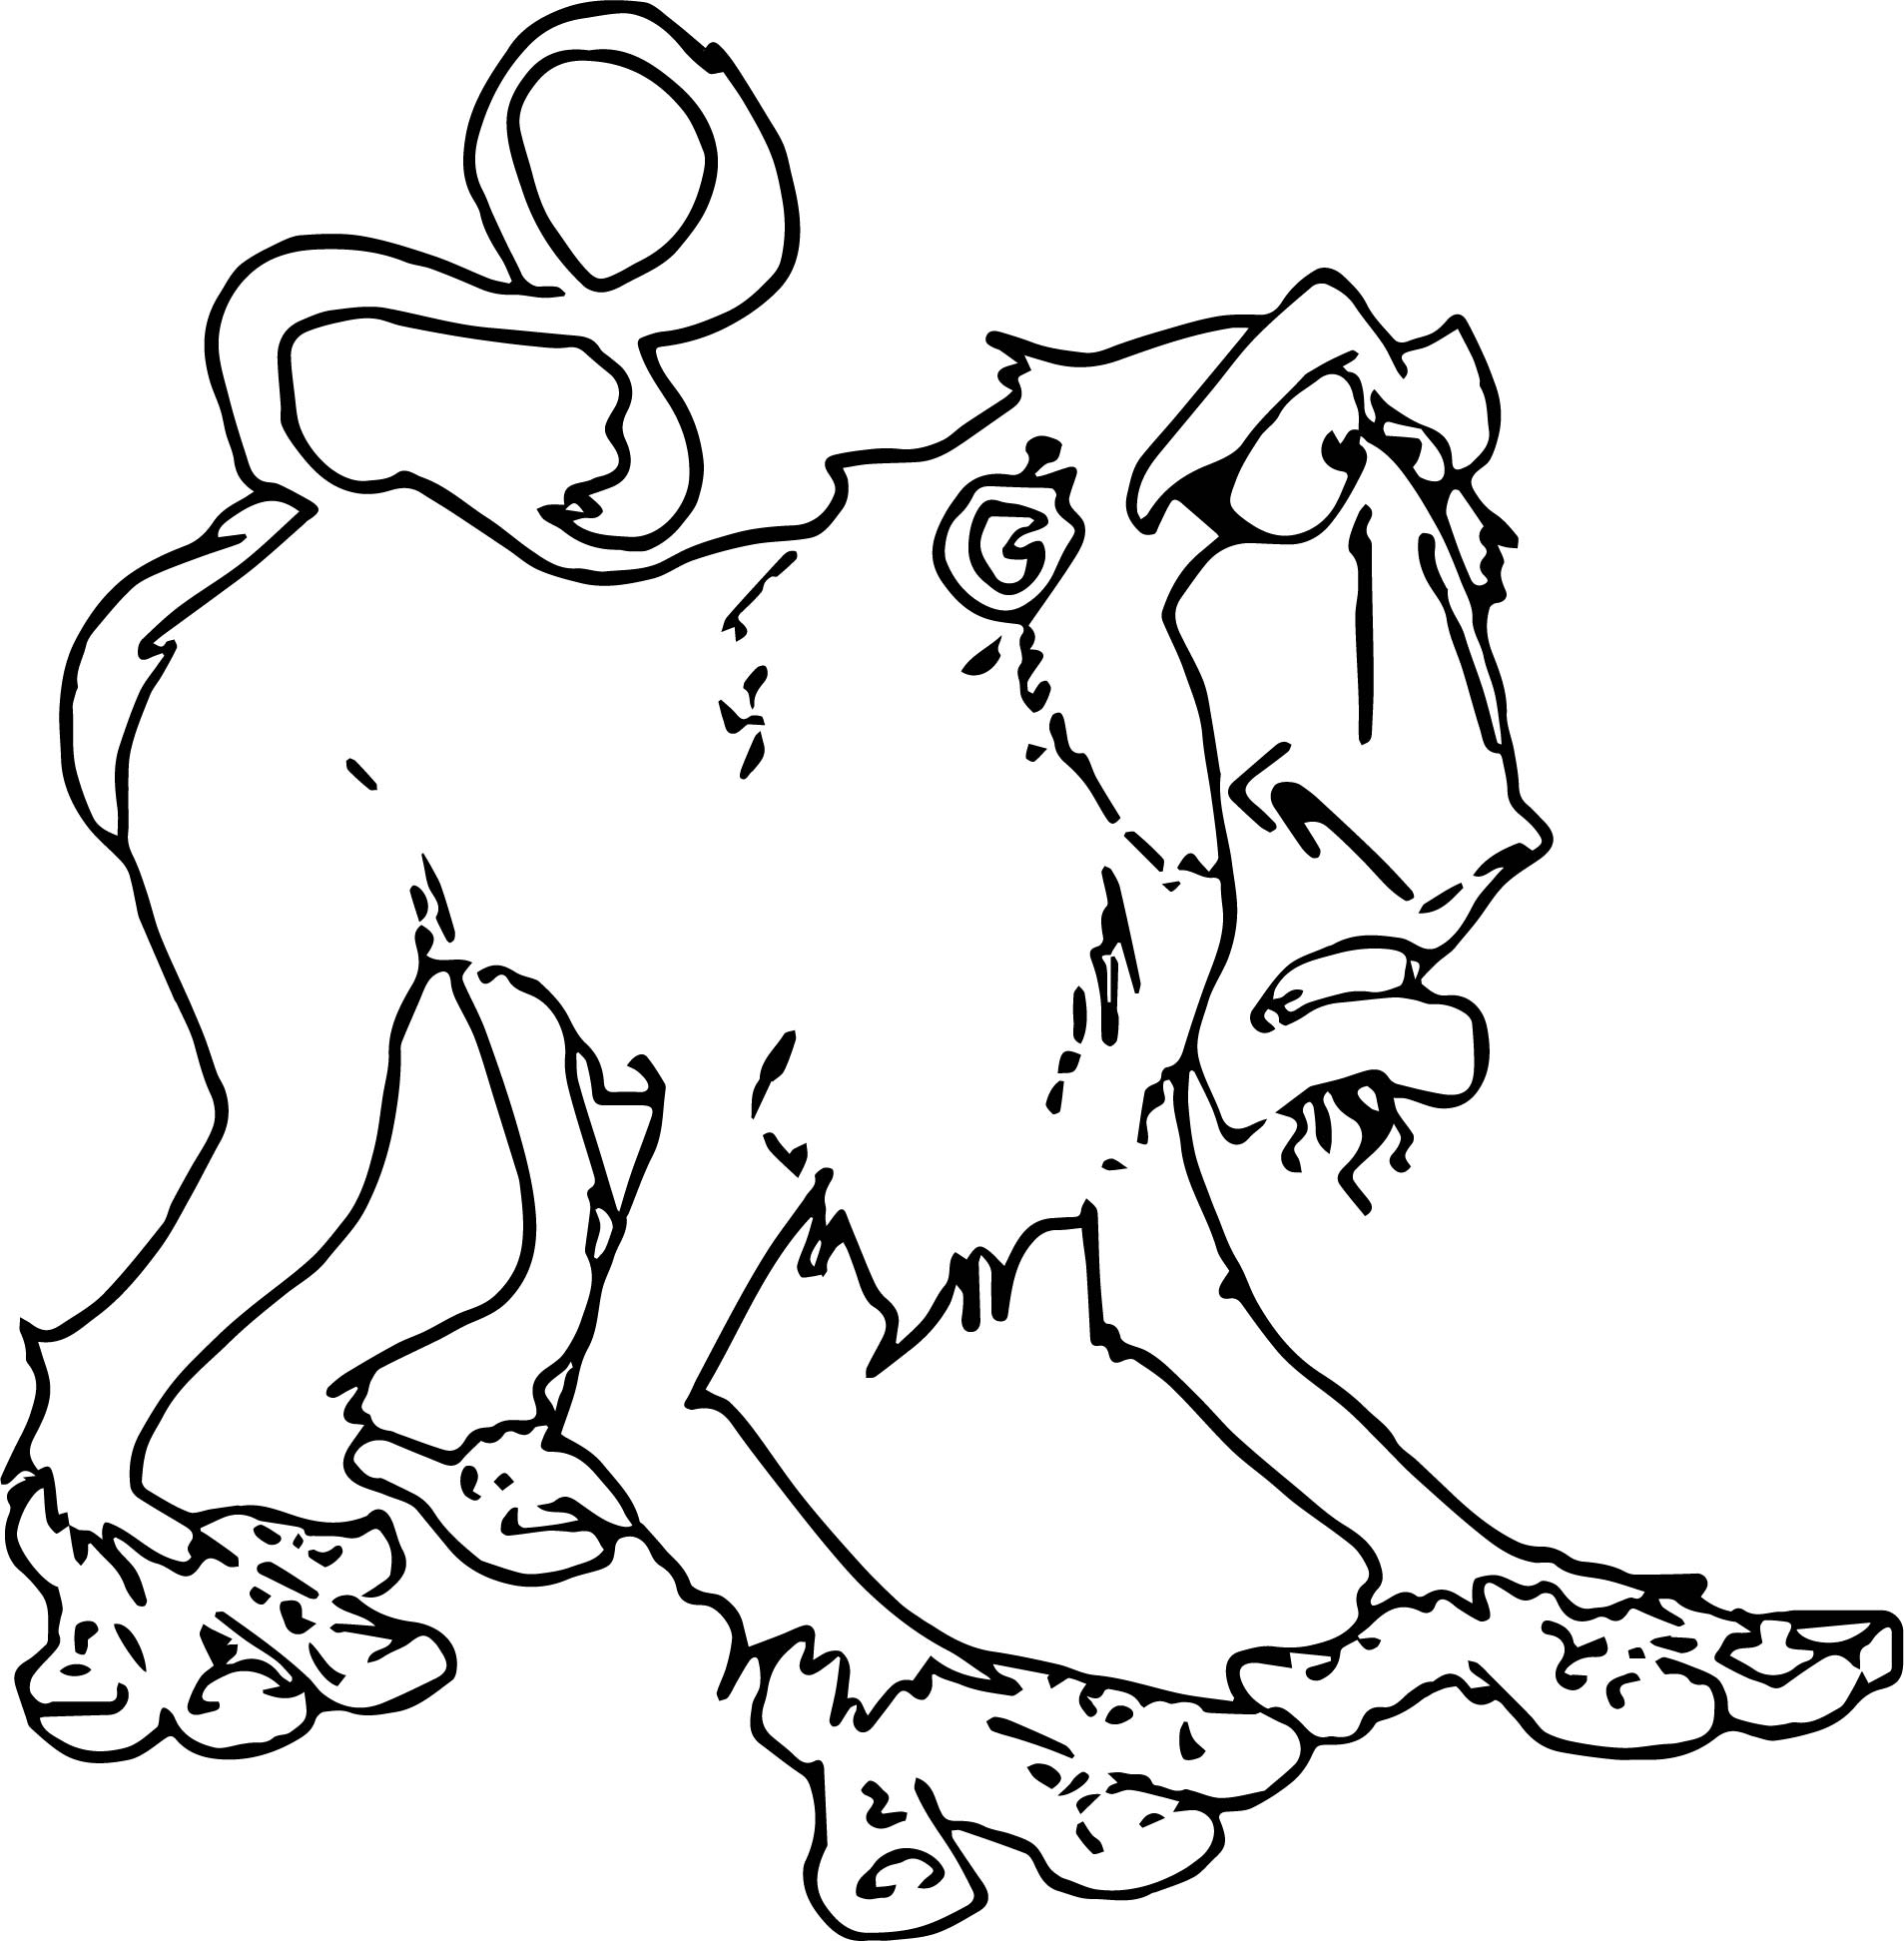 Funny Baboon Cartoon Coloring Page